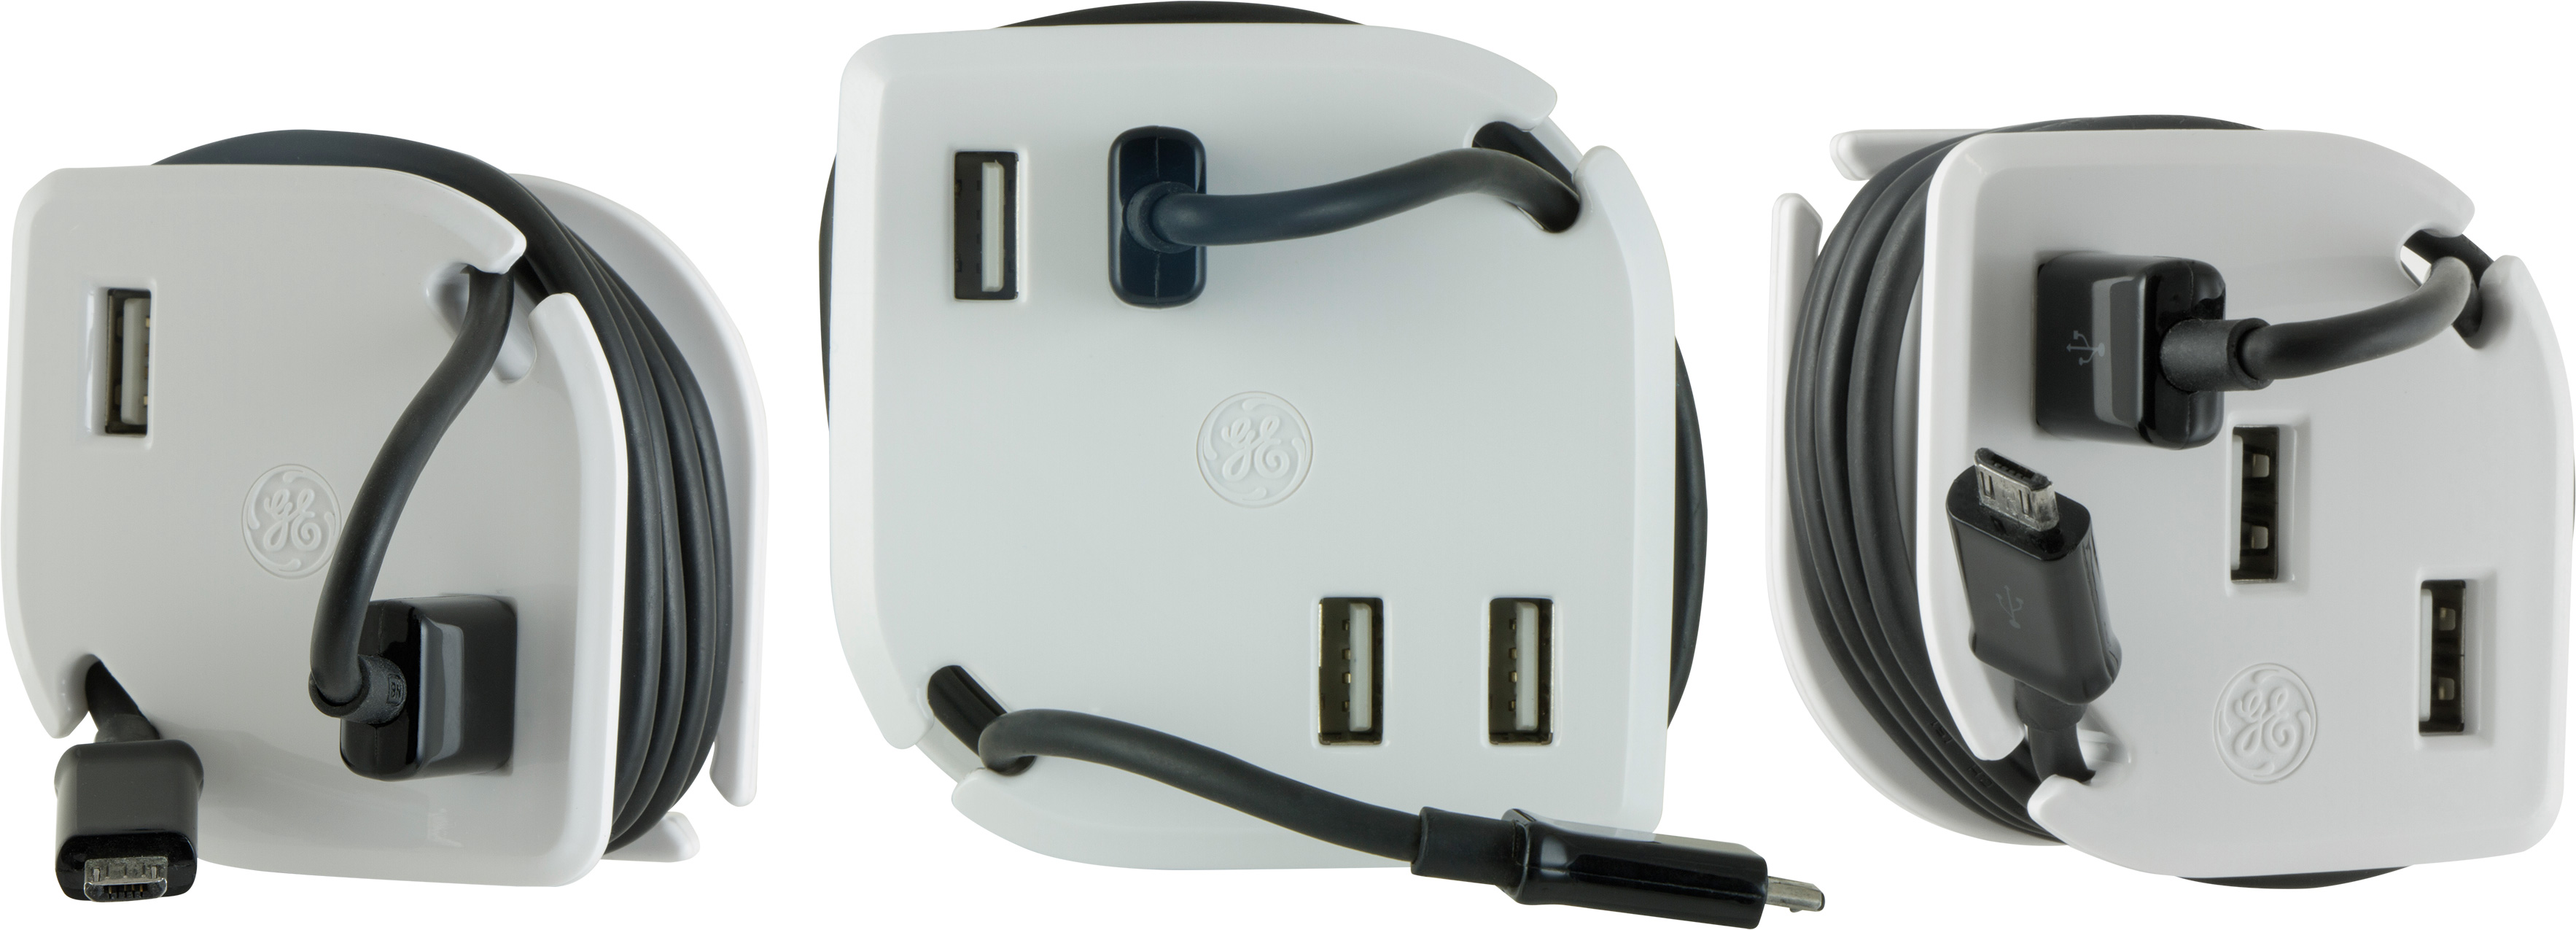 GE-Wrap-n-Charge-USB-Charging-with-Cable-Management